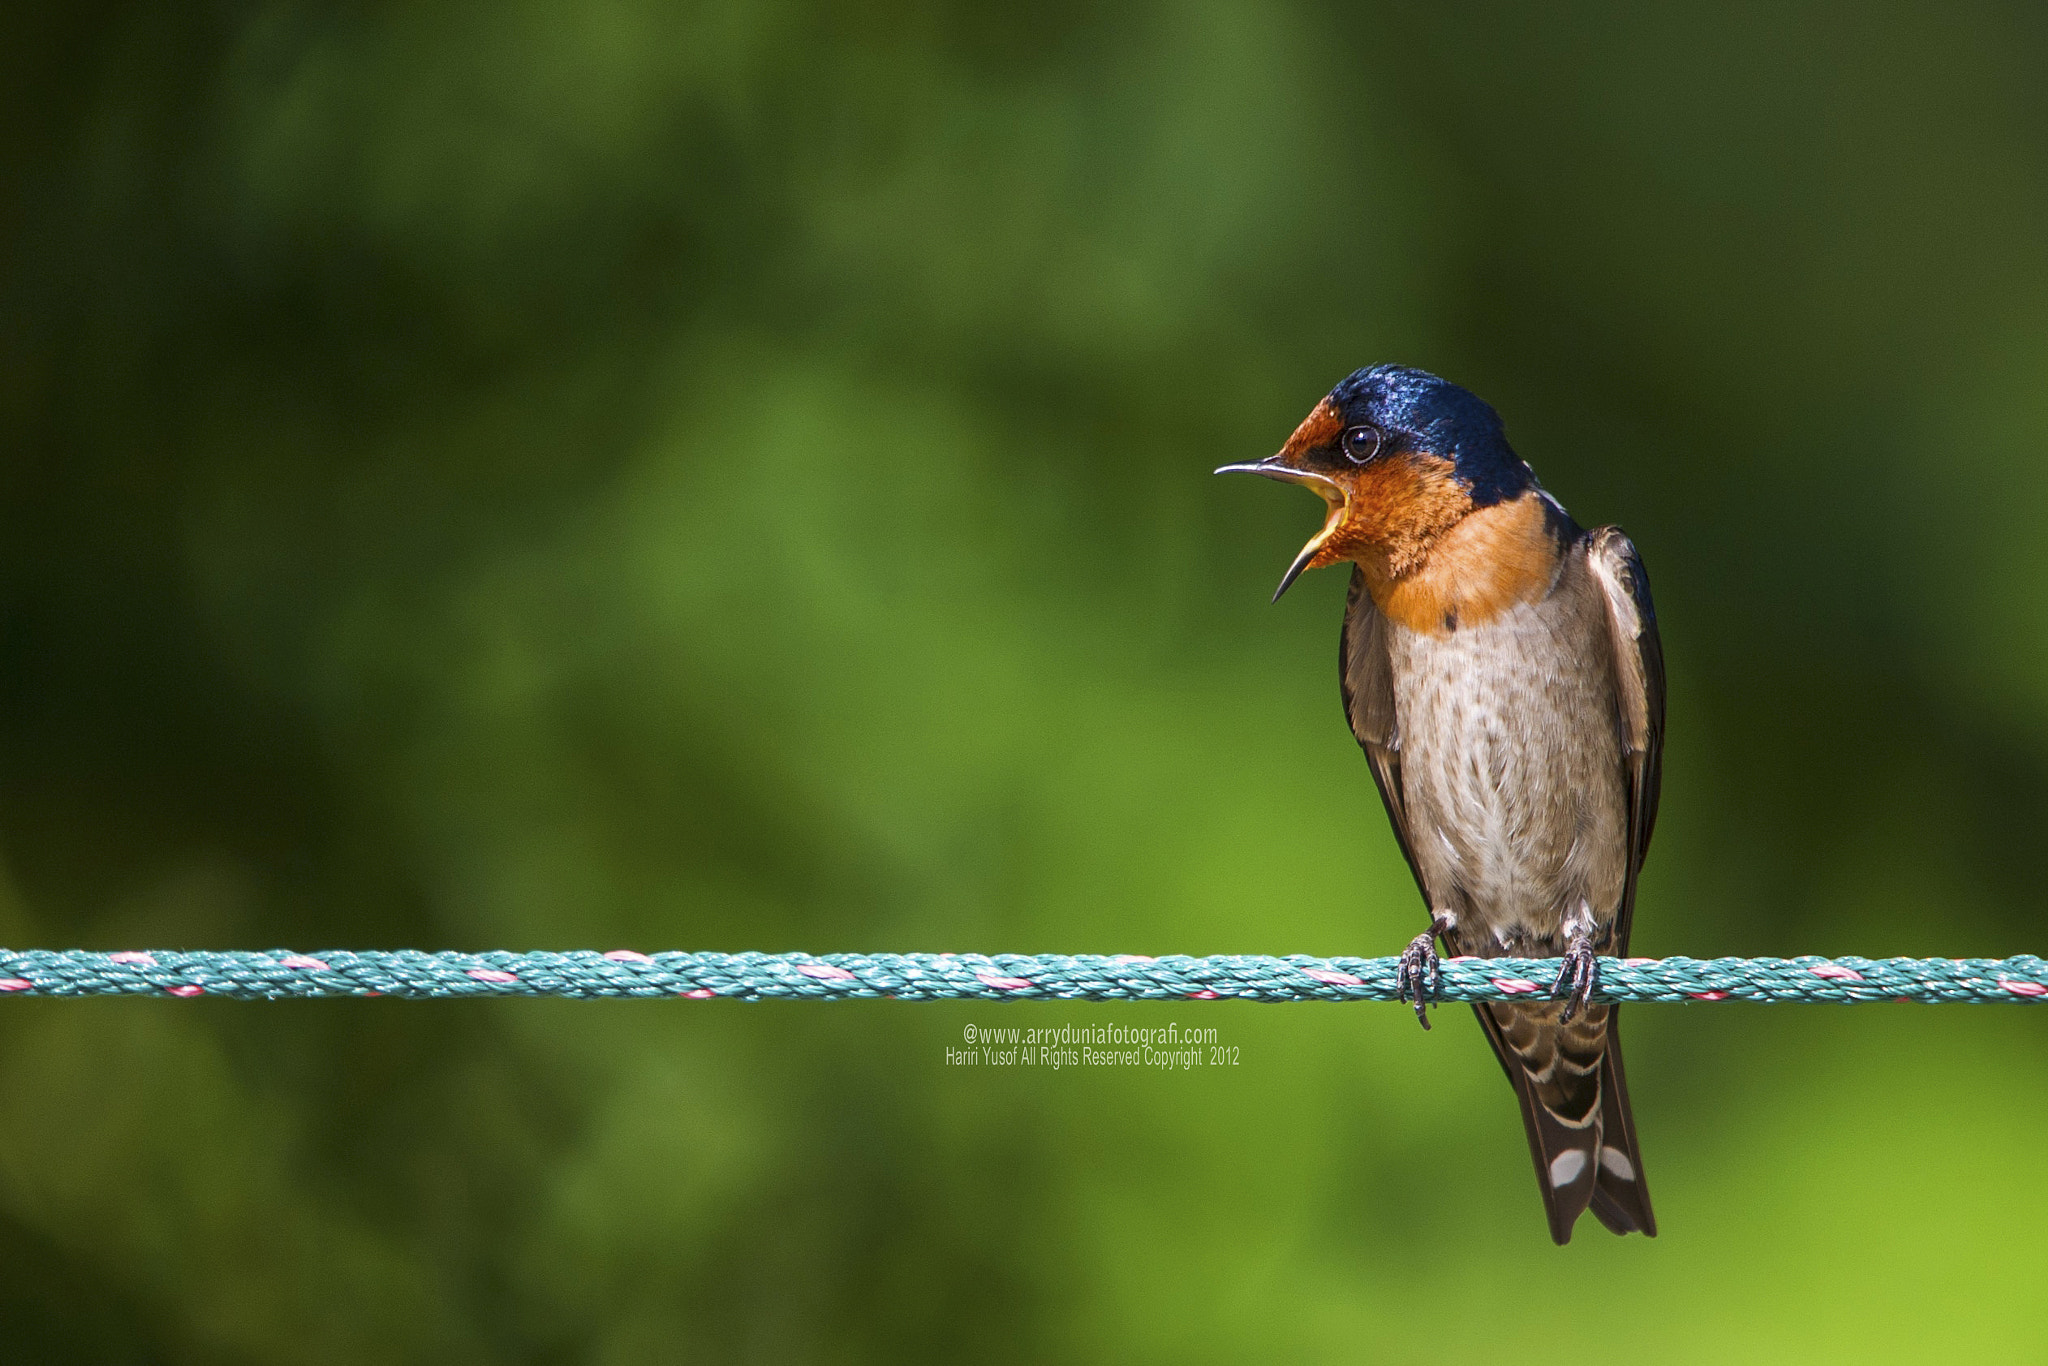 Photograph Pacific Swallow by HARIRI YUSOF on 500px